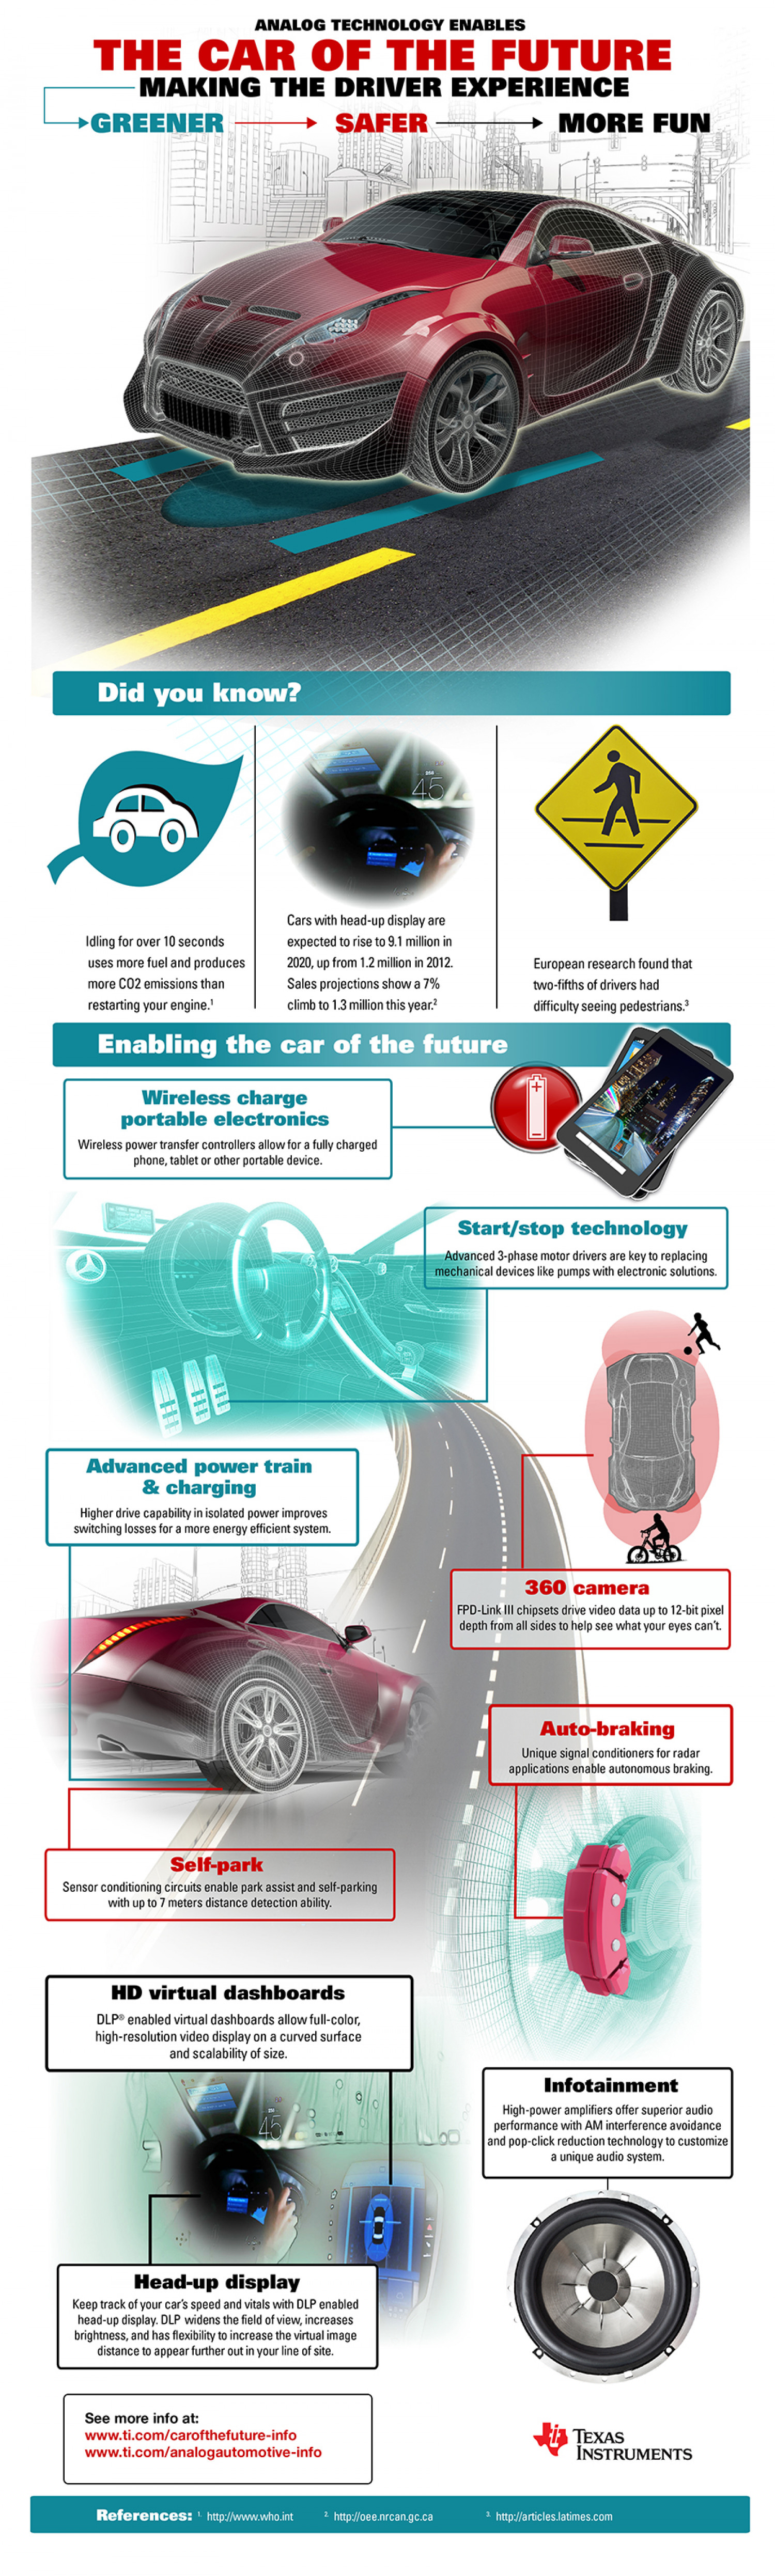 The car of the future Infographic